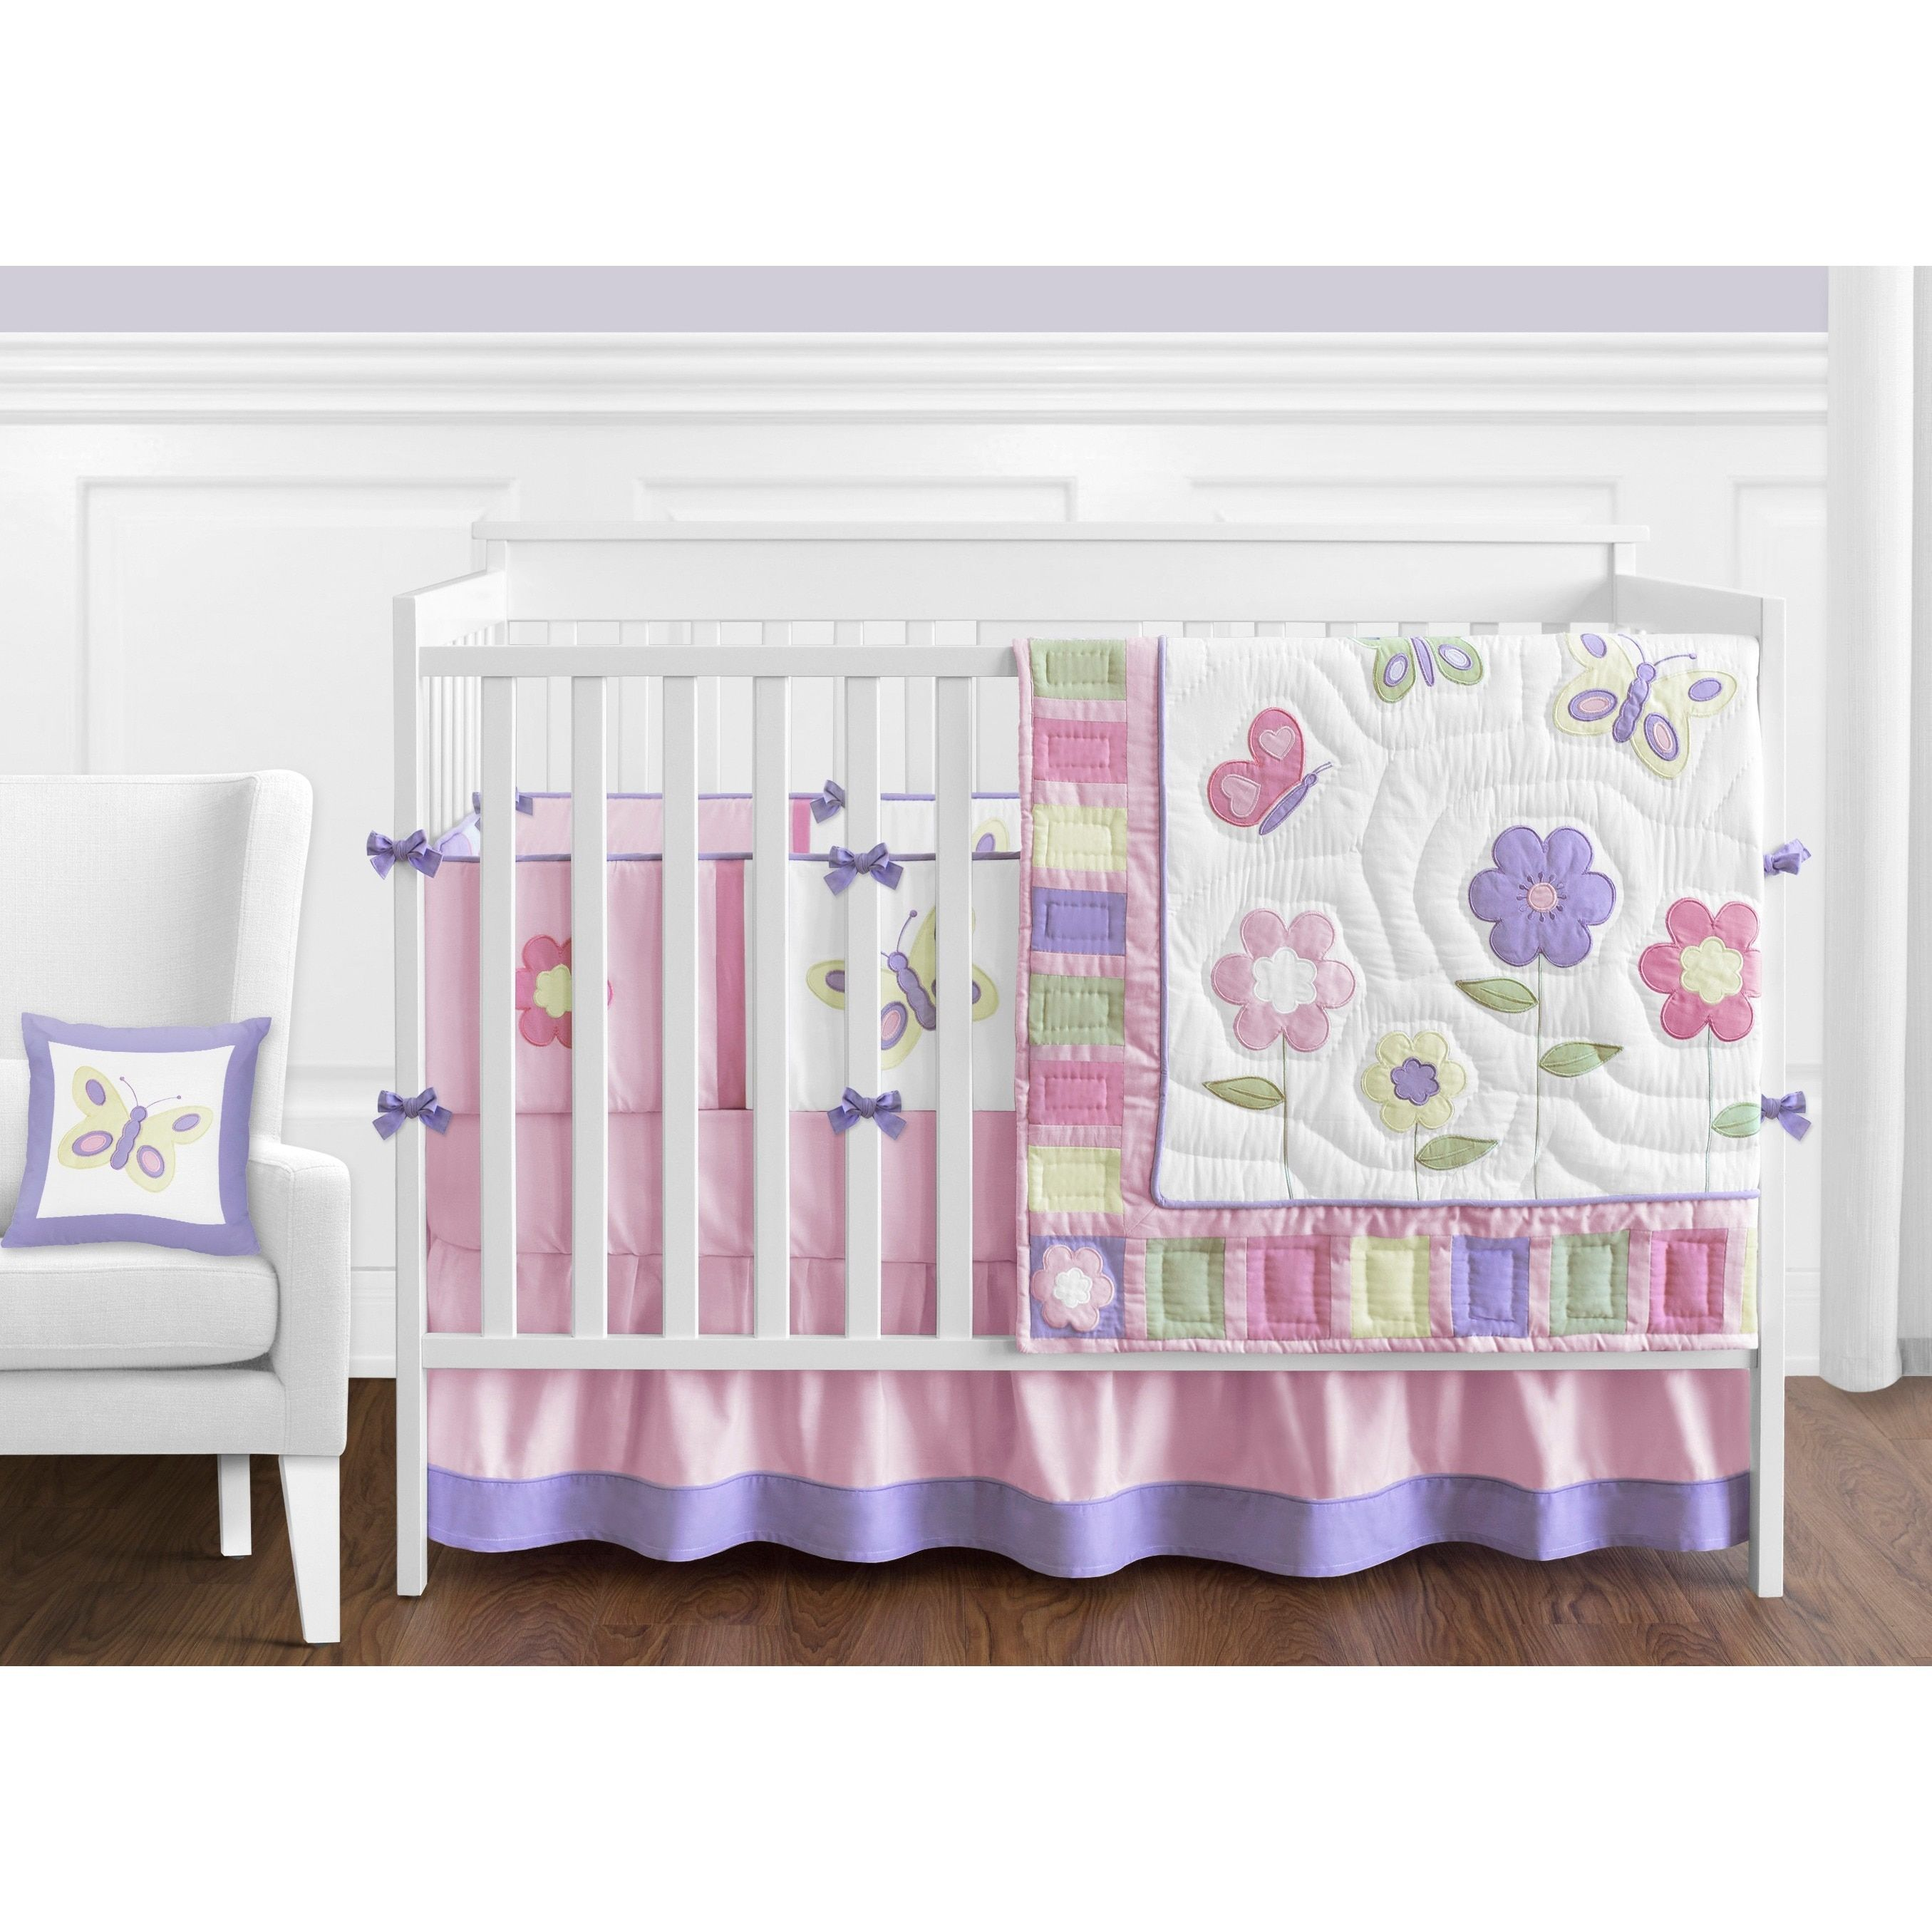 Sweet Jojo Designs Butterfly 9 Piece Crib Bedding Set, Purple